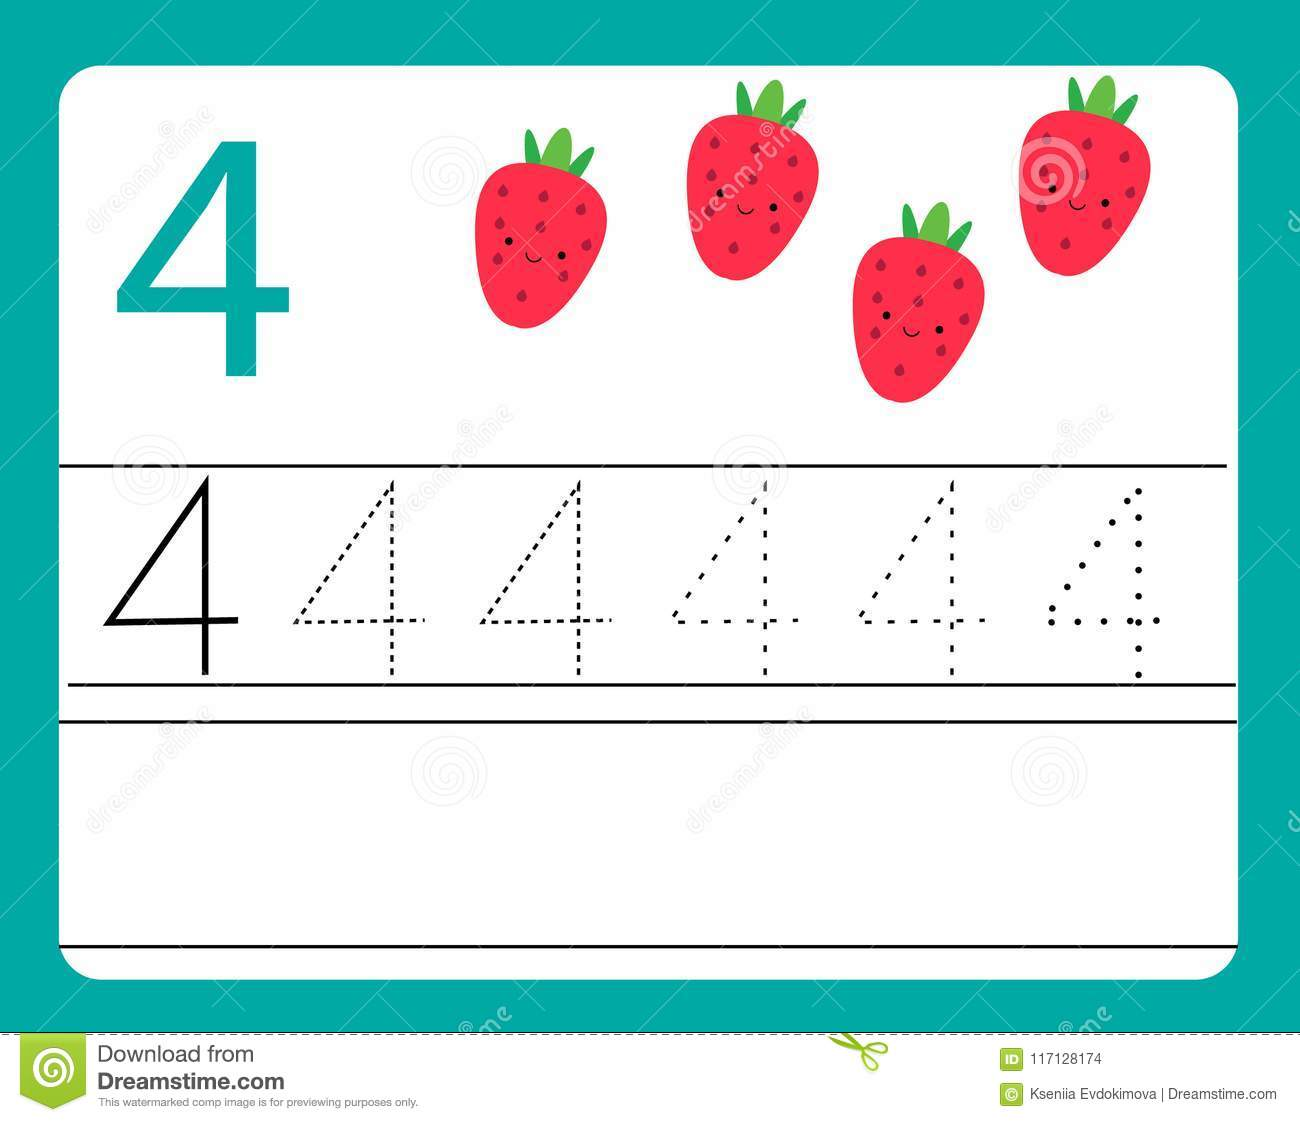 Handwriting Practice Learning Numbers With Cute Characters Number Four Educational Printable